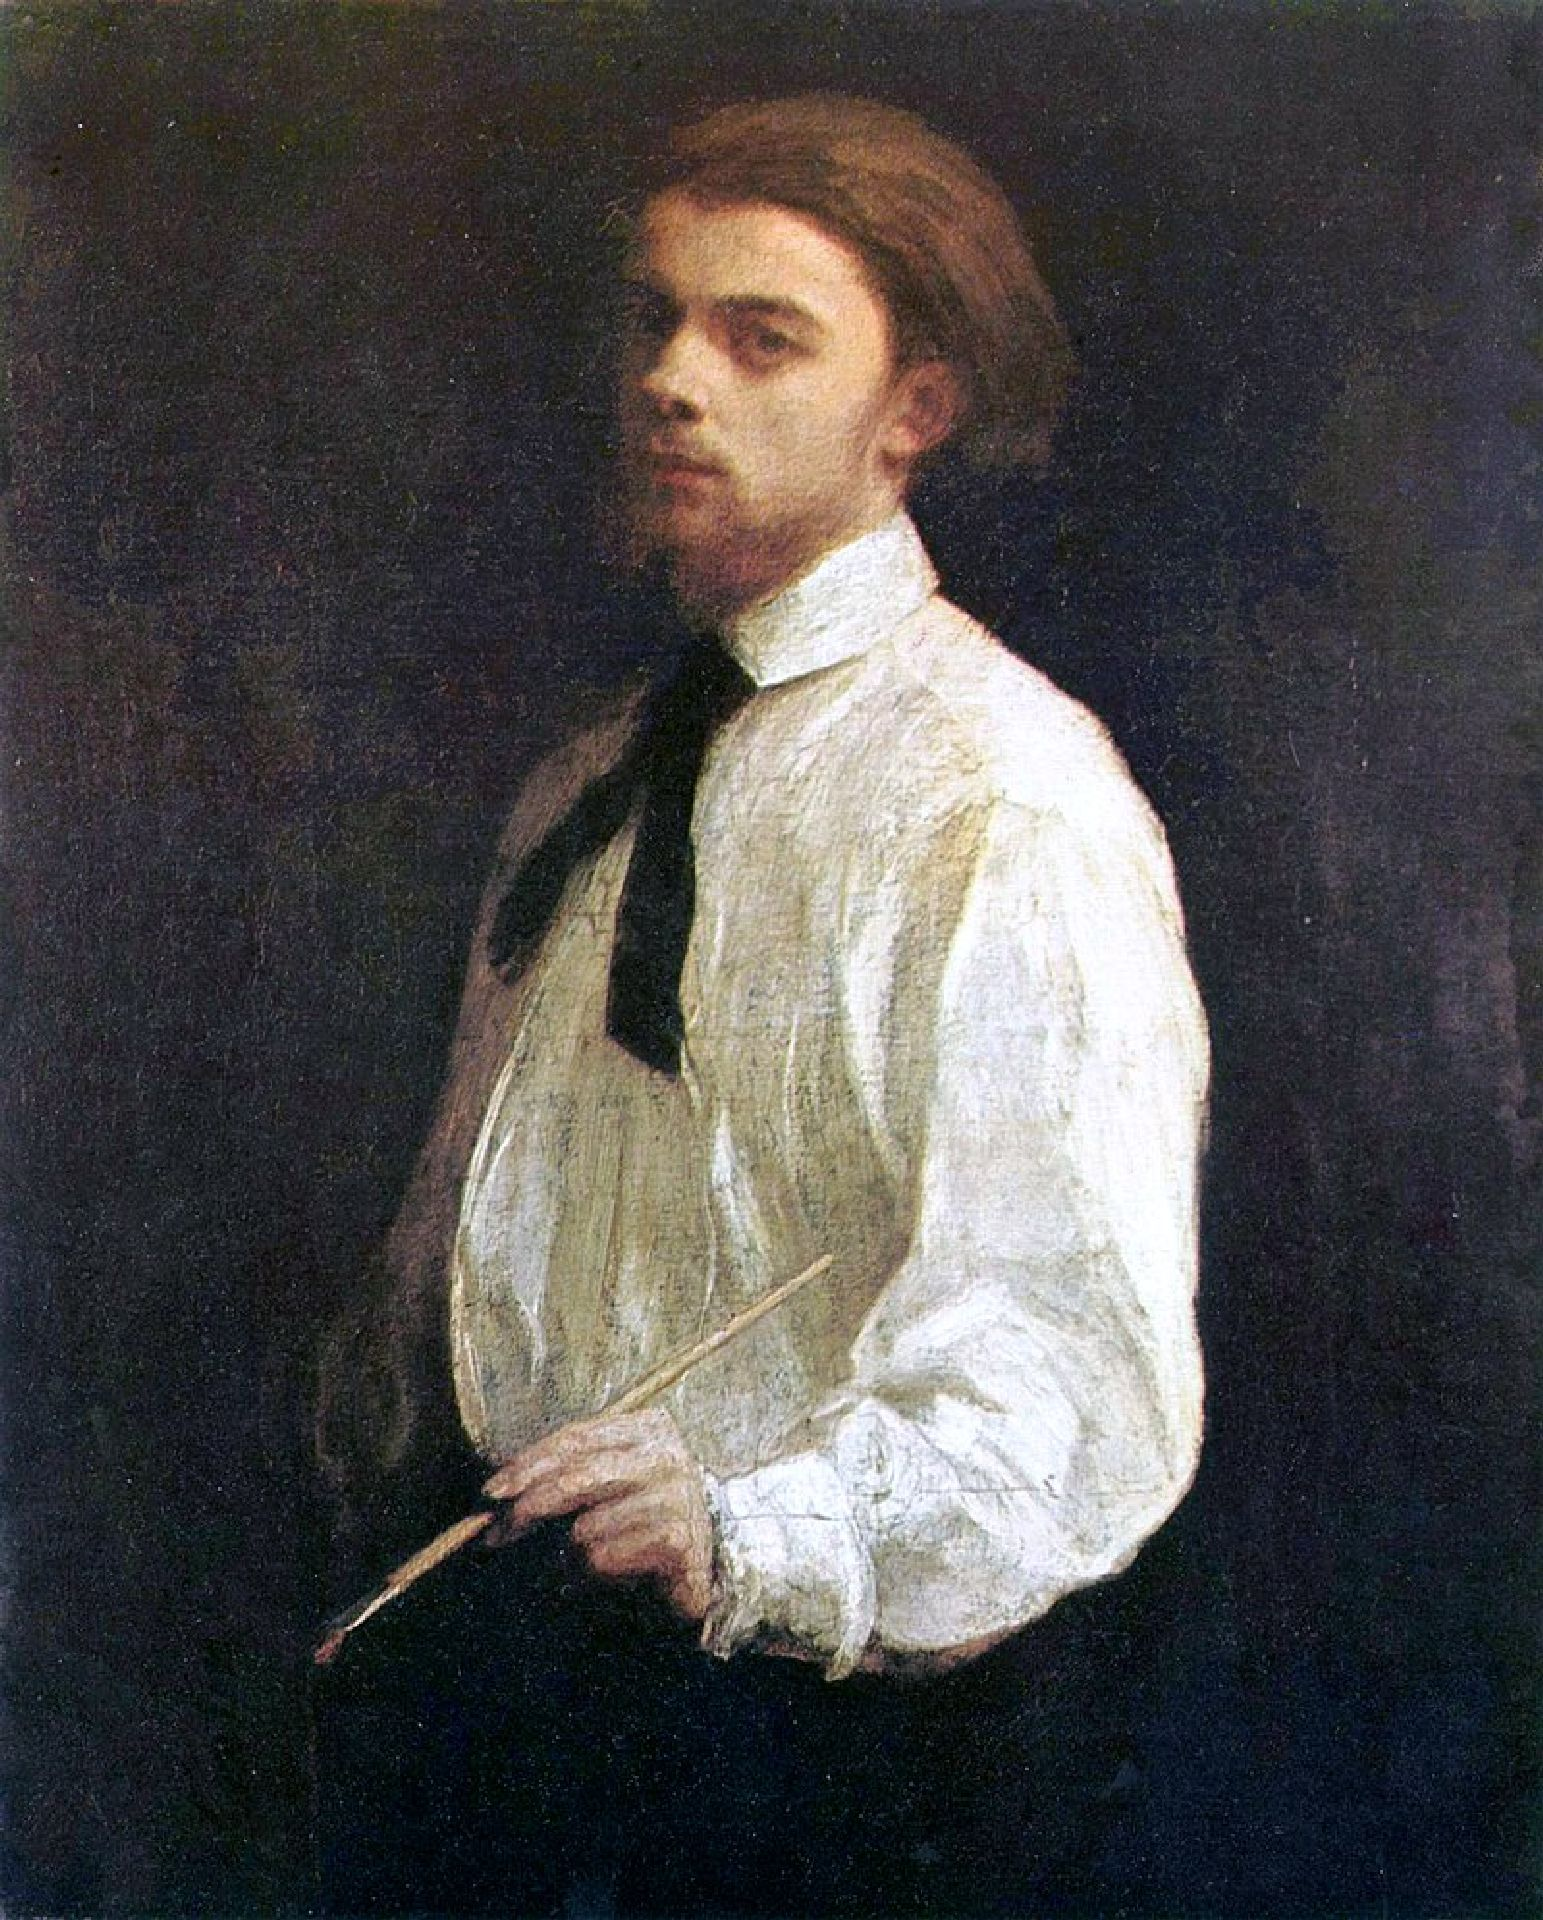 Portrait of artist and painter Ignace 'Henri' Jean Théodore Fantin-Latour